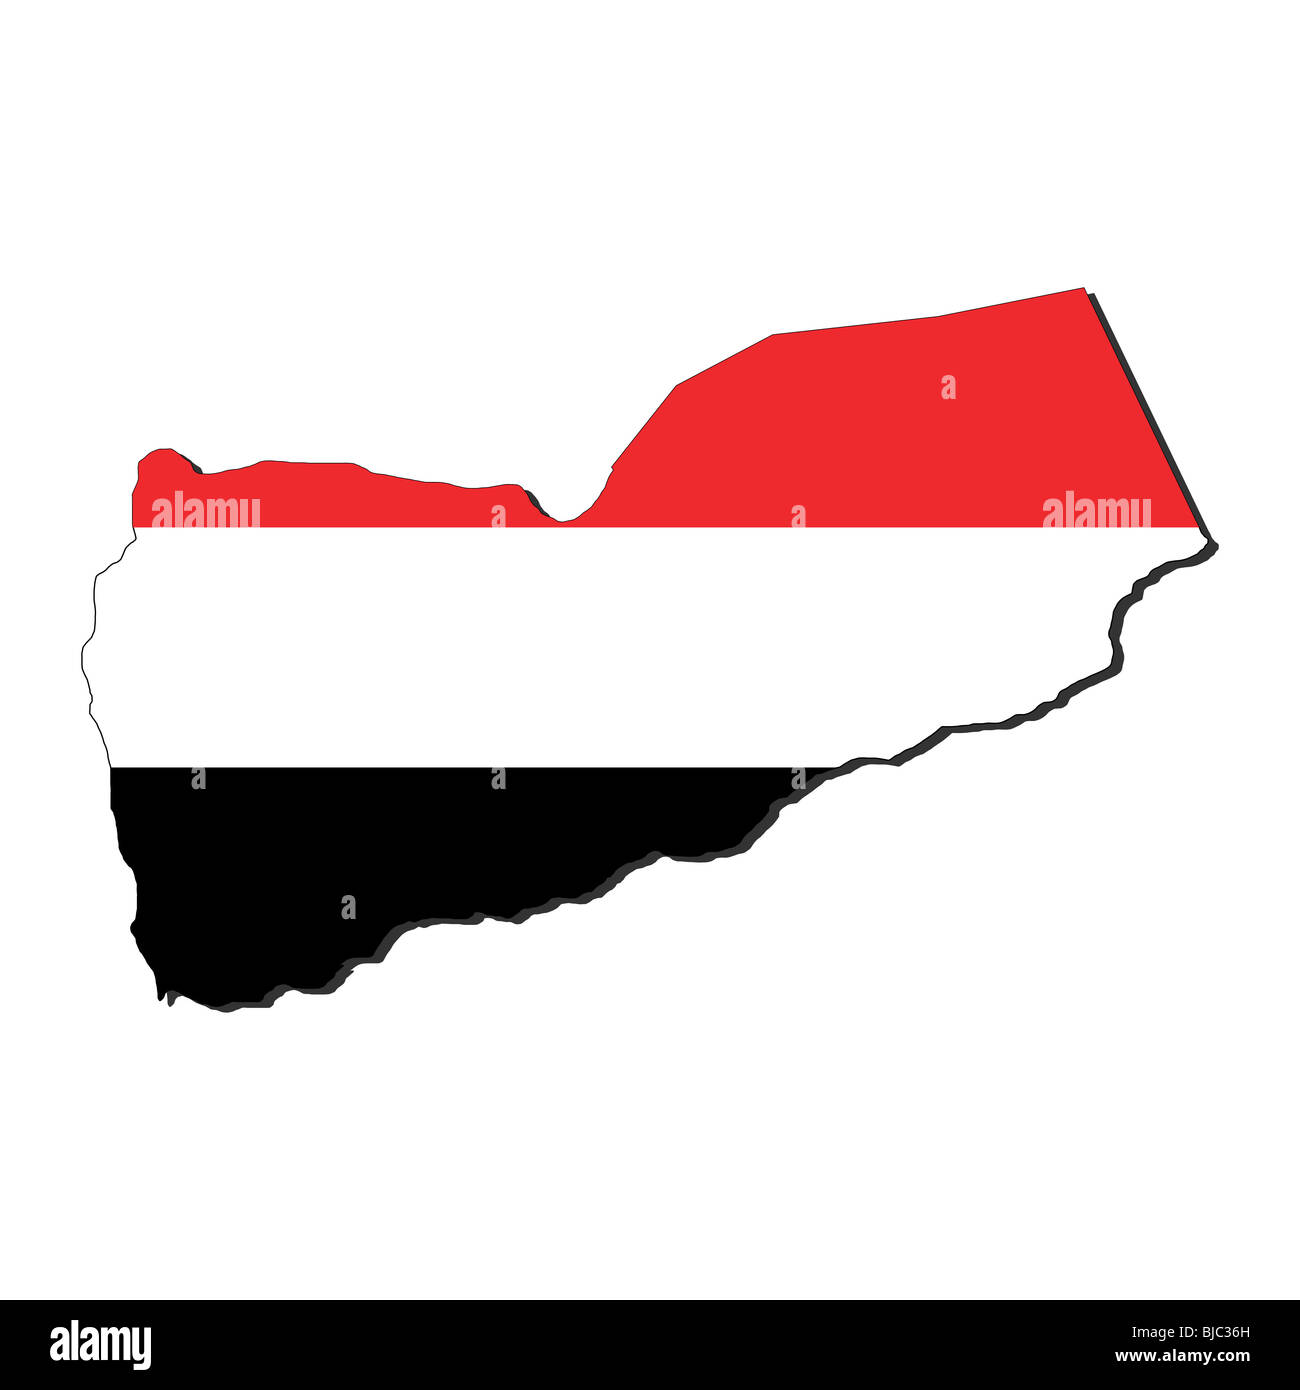 map of Yemen and their flag illustration - Stock Image